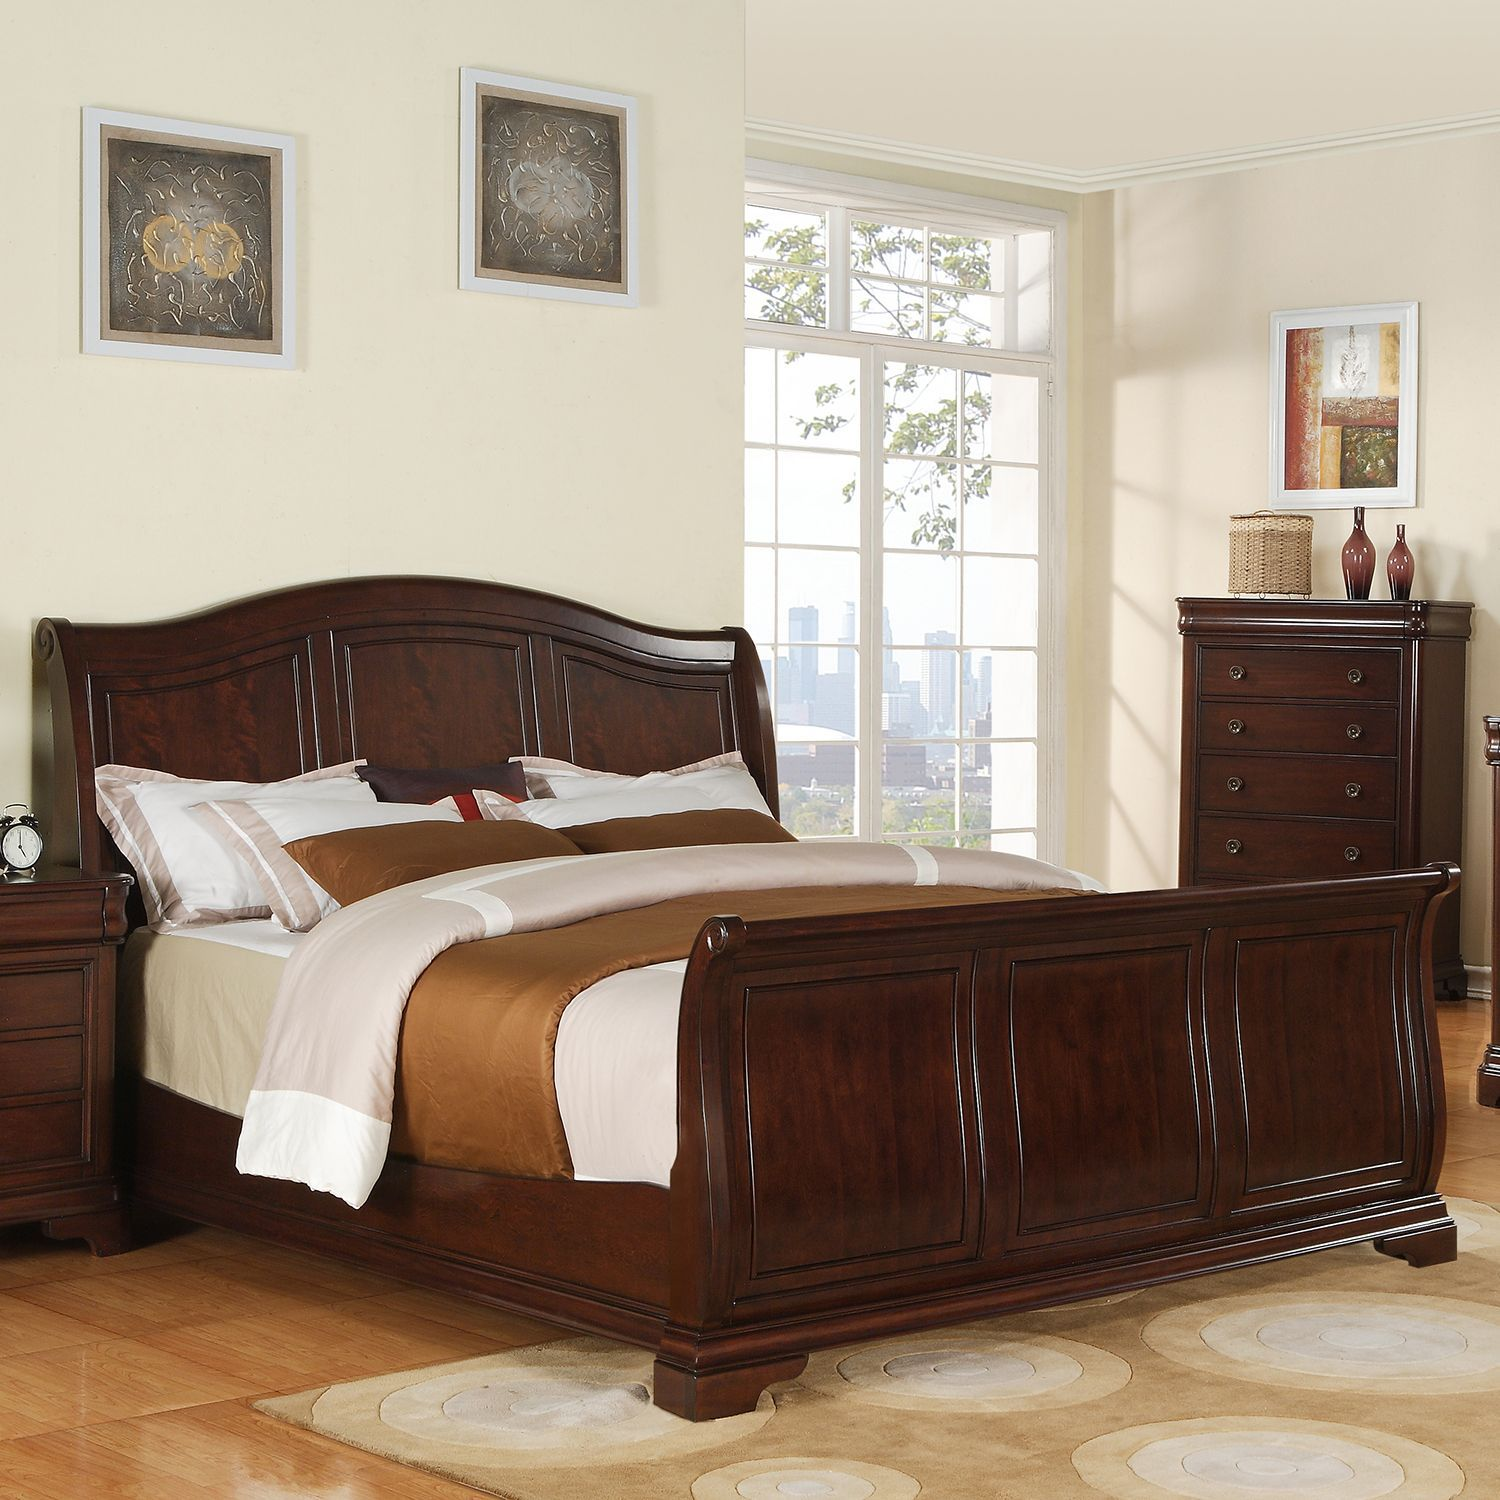 Conley King Sleigh Bed - Sam\'s Club | Things I Want <3 | 5 ...